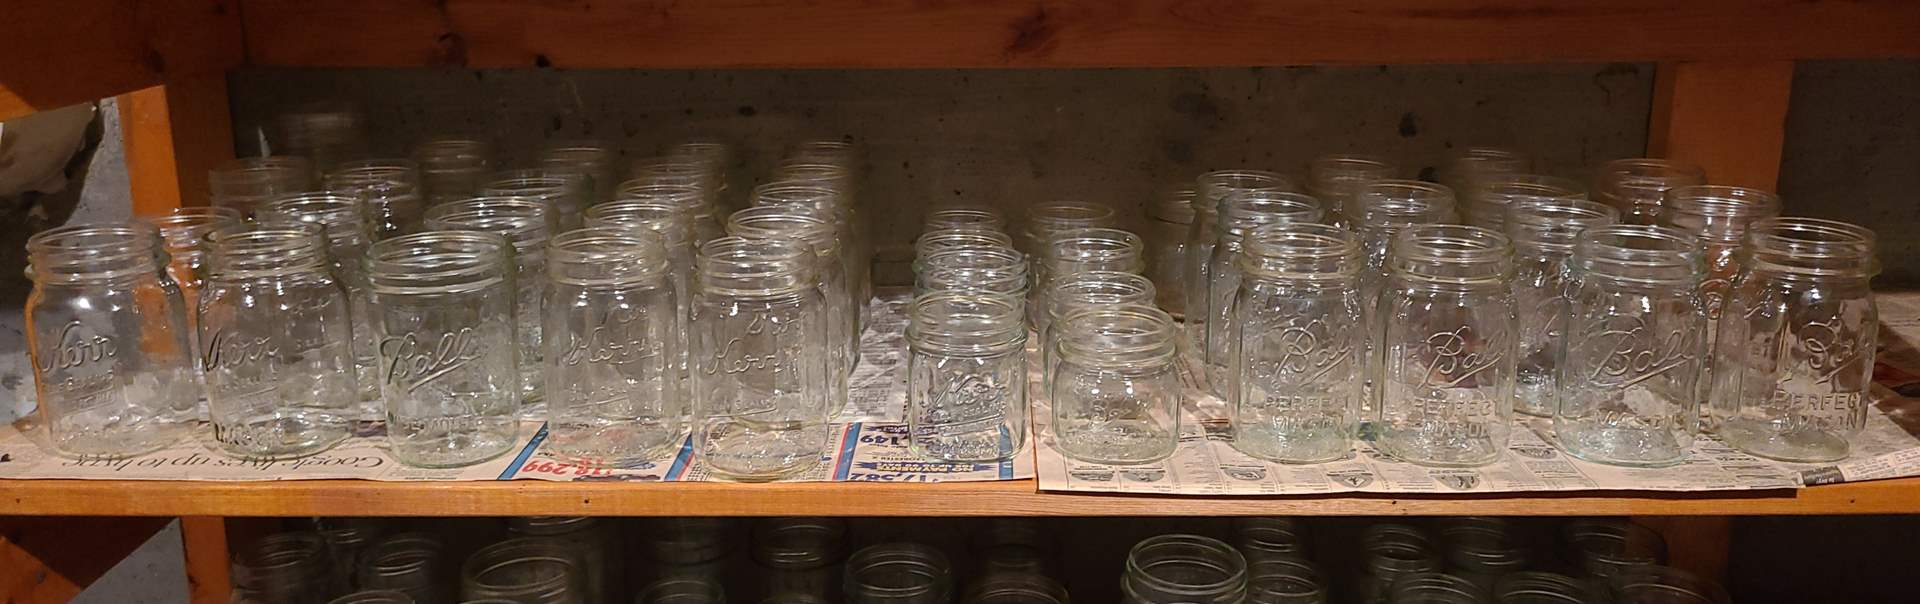 Lot#117 - Vintage Kerr and Ball Canning Jars of Varying Sizes * 40+ (main image)